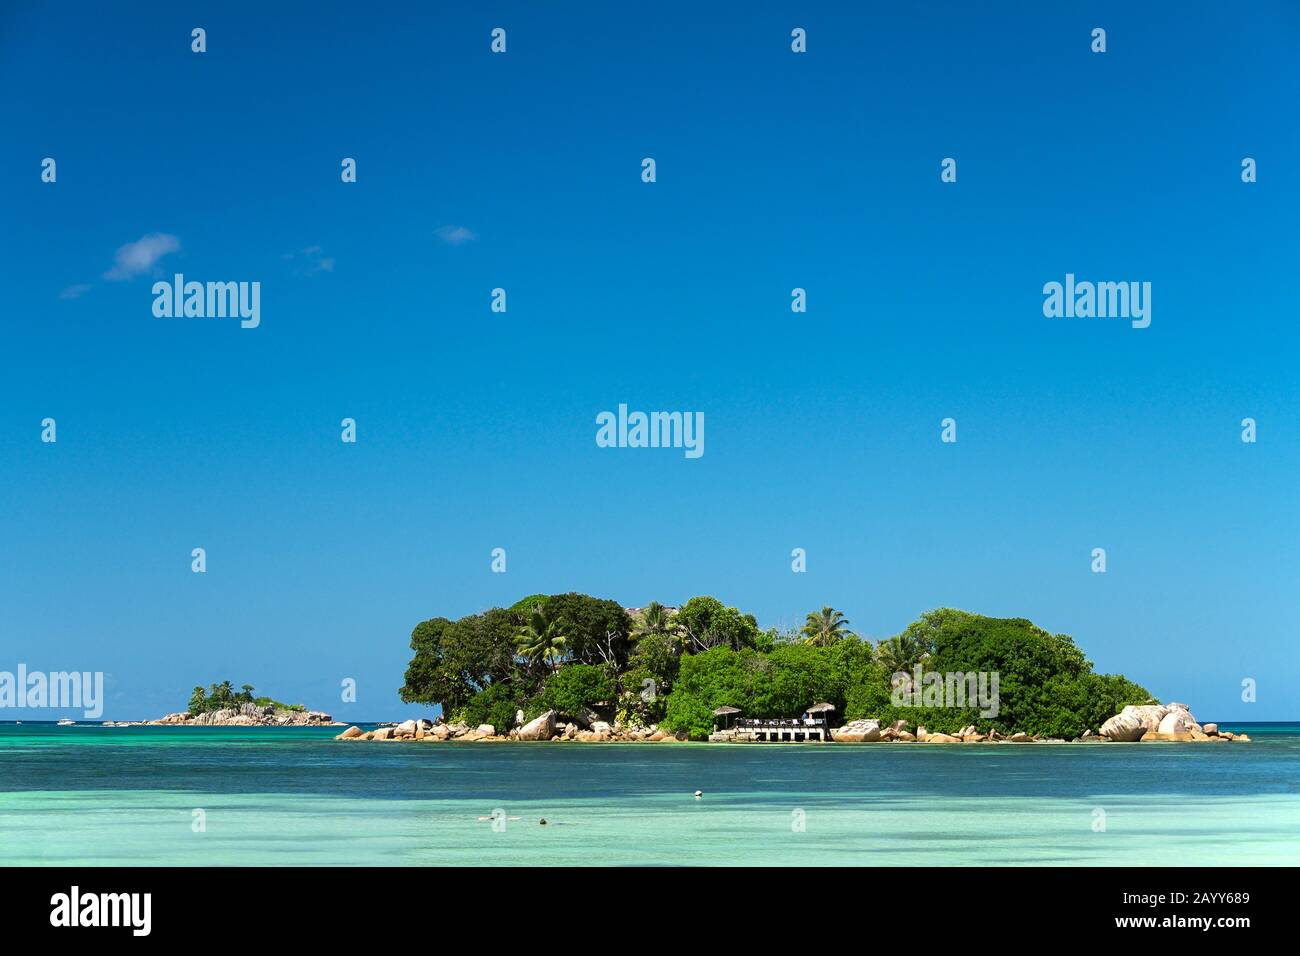 Snorkelers in tropical clerar waters by Chauve Souris Island with St Pierre Islet in the background. Praslin Island, Seychelles Stock Photo